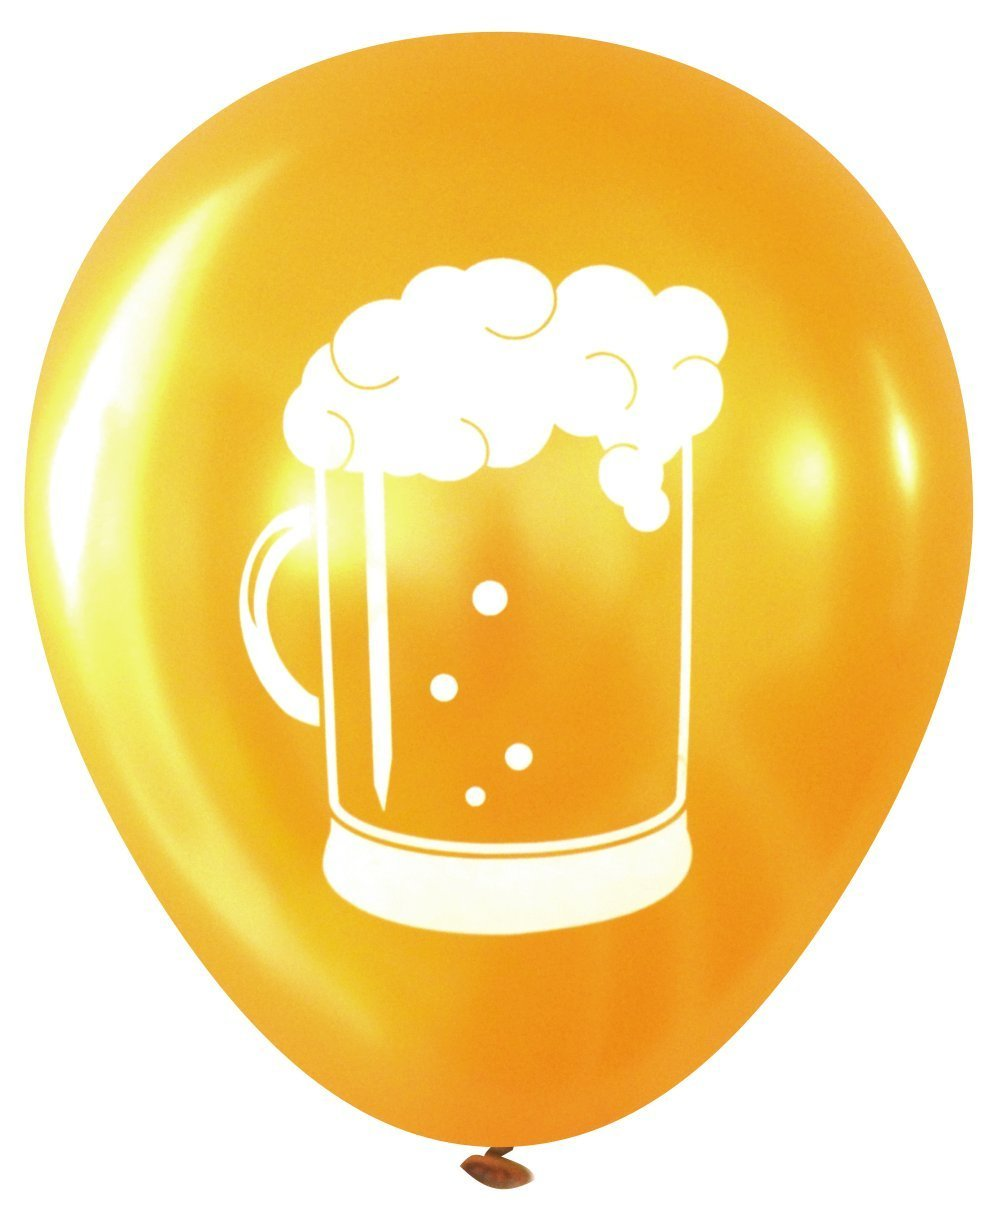 Beer Stein Latex Balloons (16 pcs) by Nerdy Words (Gold)